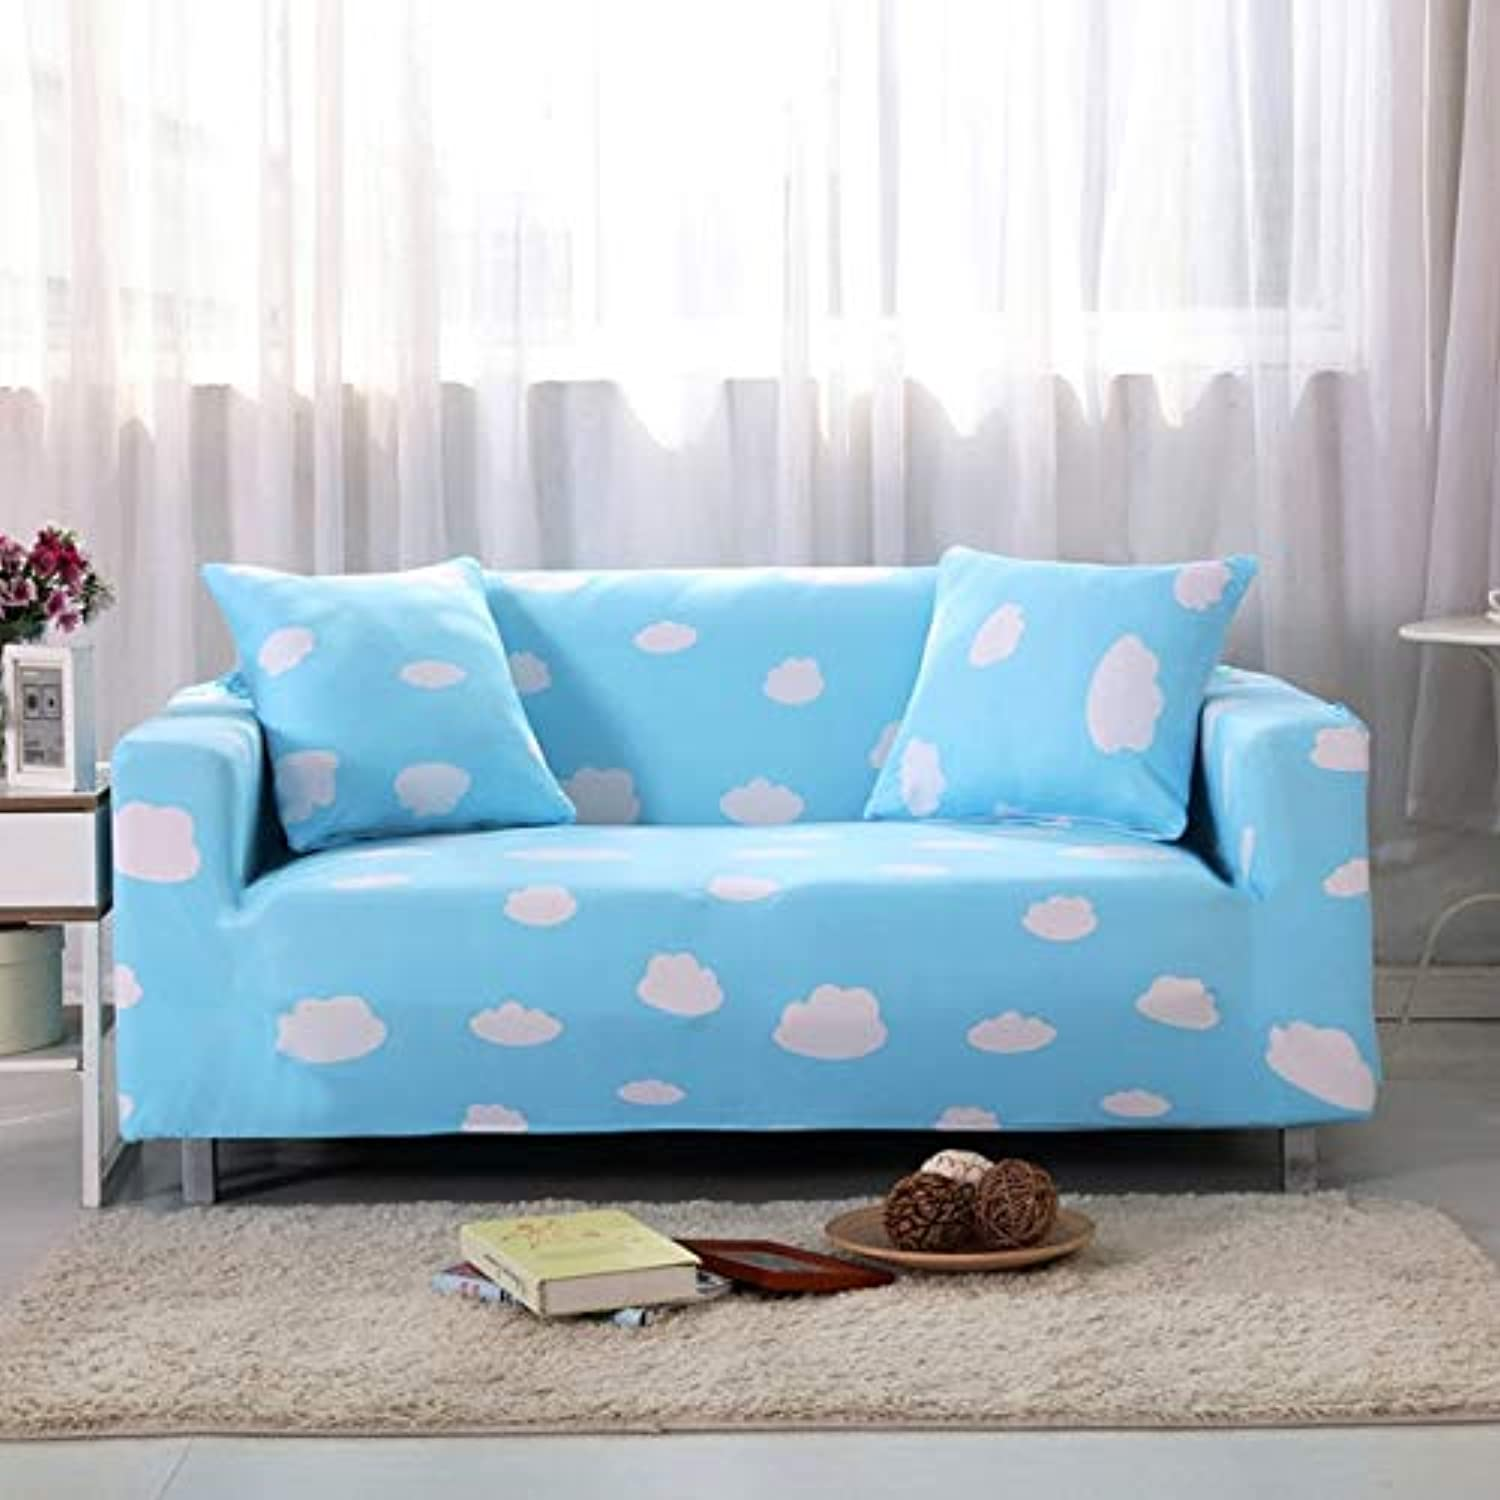 Turetrip Printing Soft Fabric Slipcovers for Couch Cover Canape Case Tight Wrap All-Inclusive Anti Slip Sofa Slipcover   I, One Seat 90-140cm